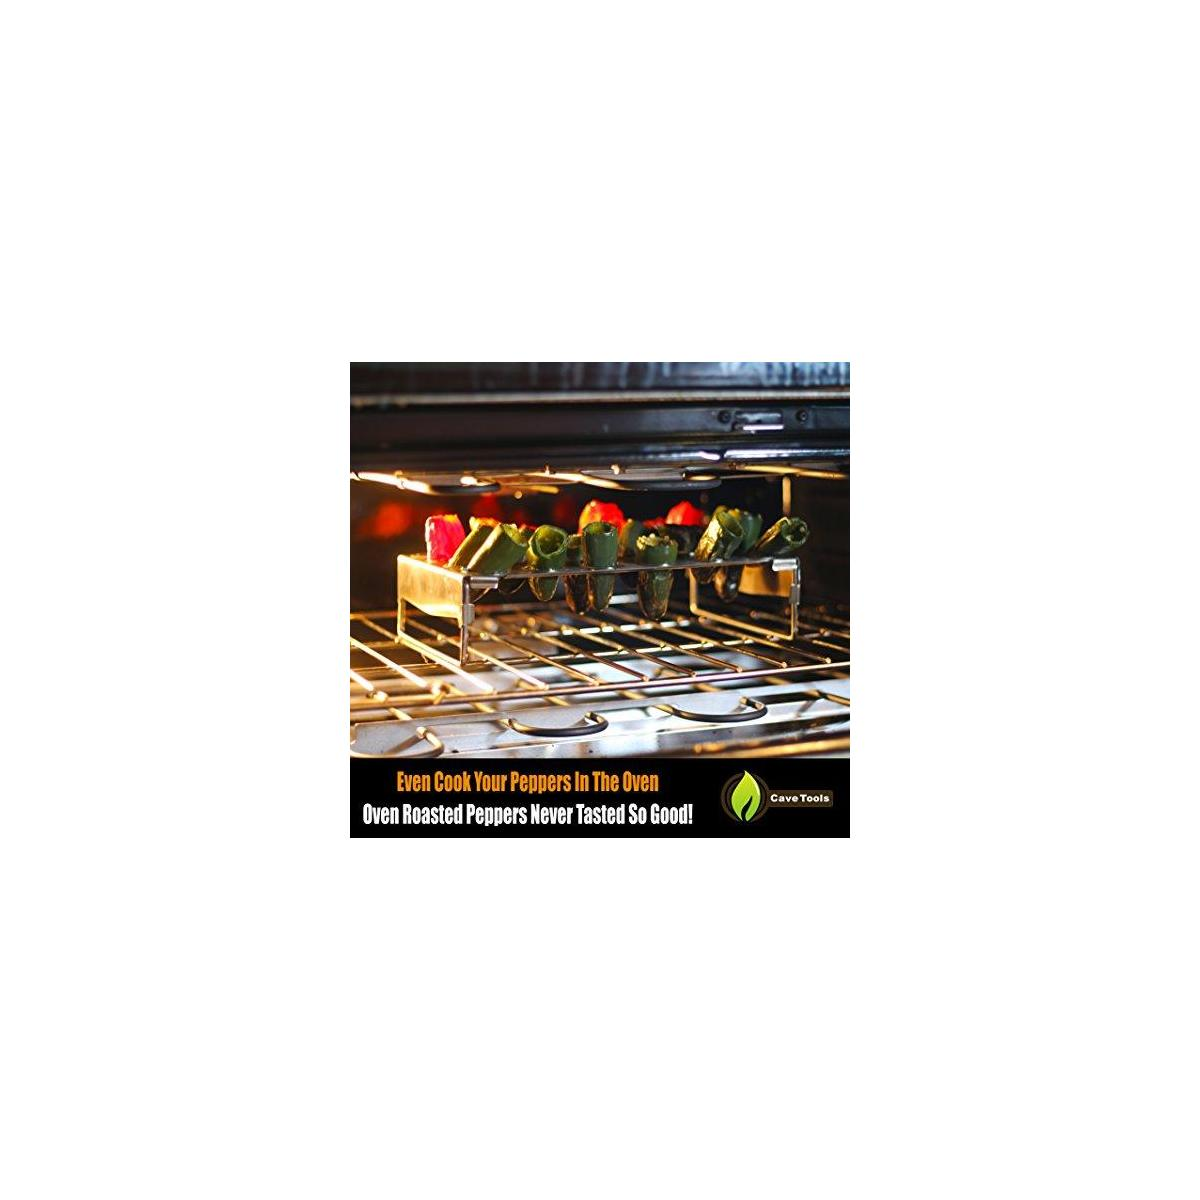 Beer Can Chicken Roaster + Jalapeno Grill Rack & Pepper Corer Tool - Large 24 Capacity Holder - Also for Cooking Chili or Bird Legs & Wings on BBQ Smoker or Oven - Dishwasher Safe Stainless Steel